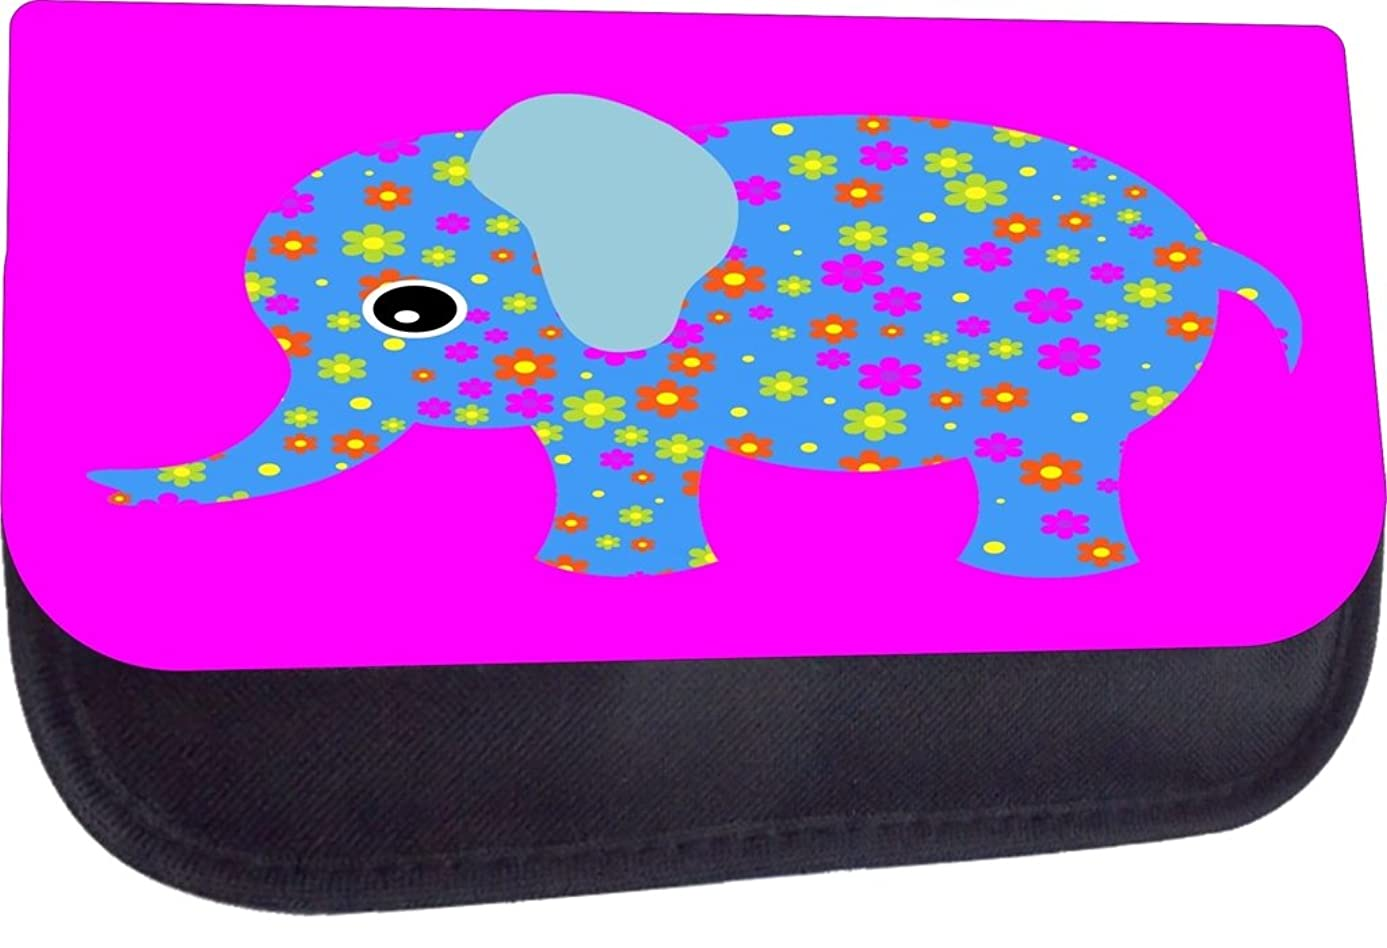 Rosie Parker Inc. TM Pencil Case Made in the U.S.A.-Cute Floral Patterend Baby Elephant Print Design